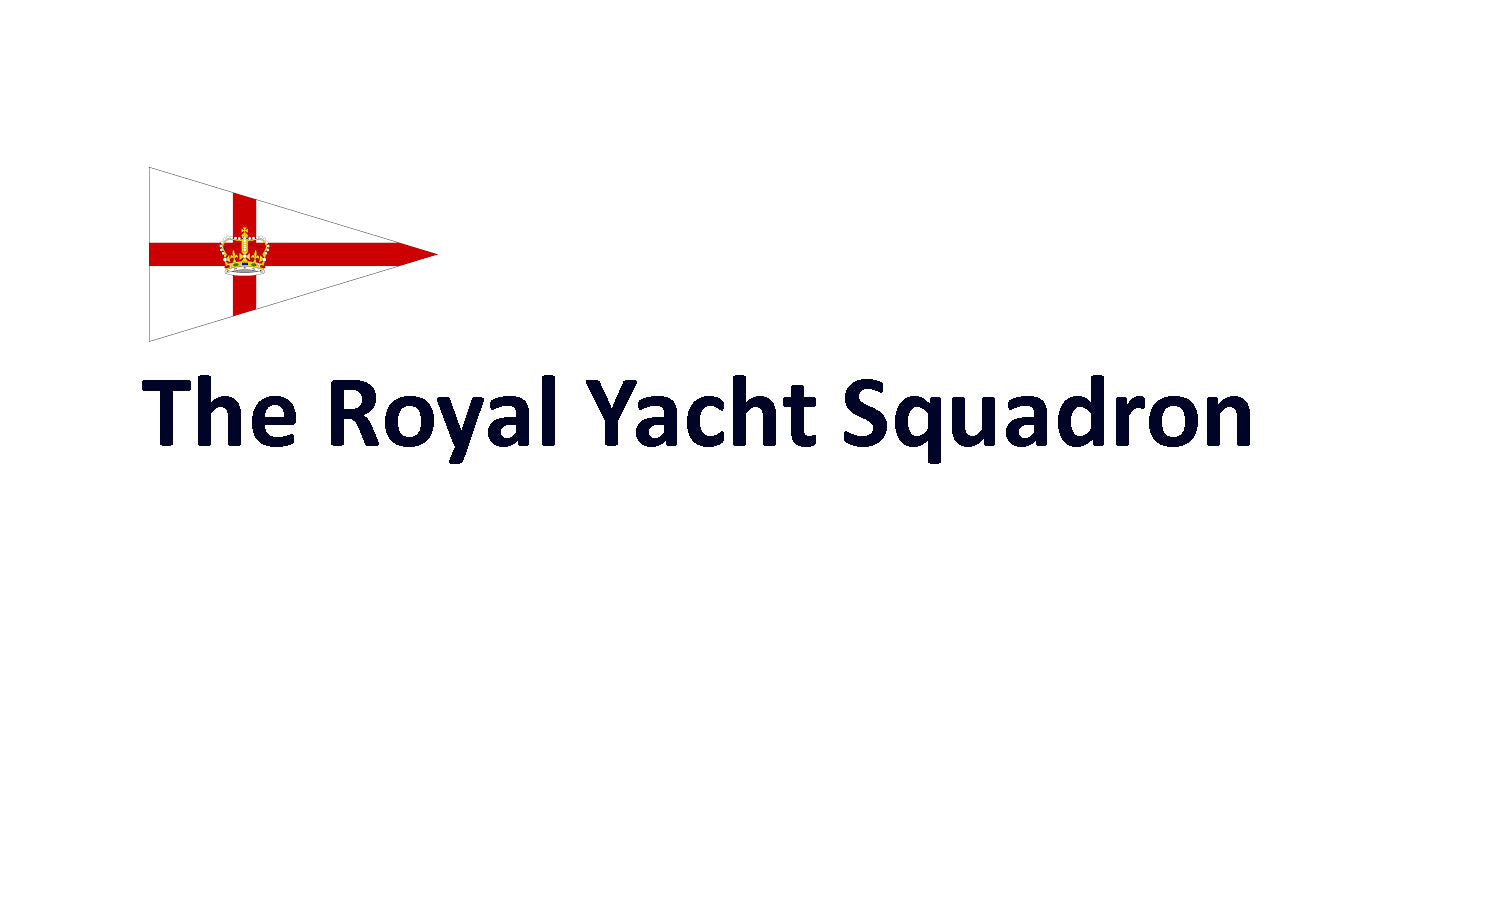 The Royal Yacht Squadron flags by Red Dragon Flagmakers